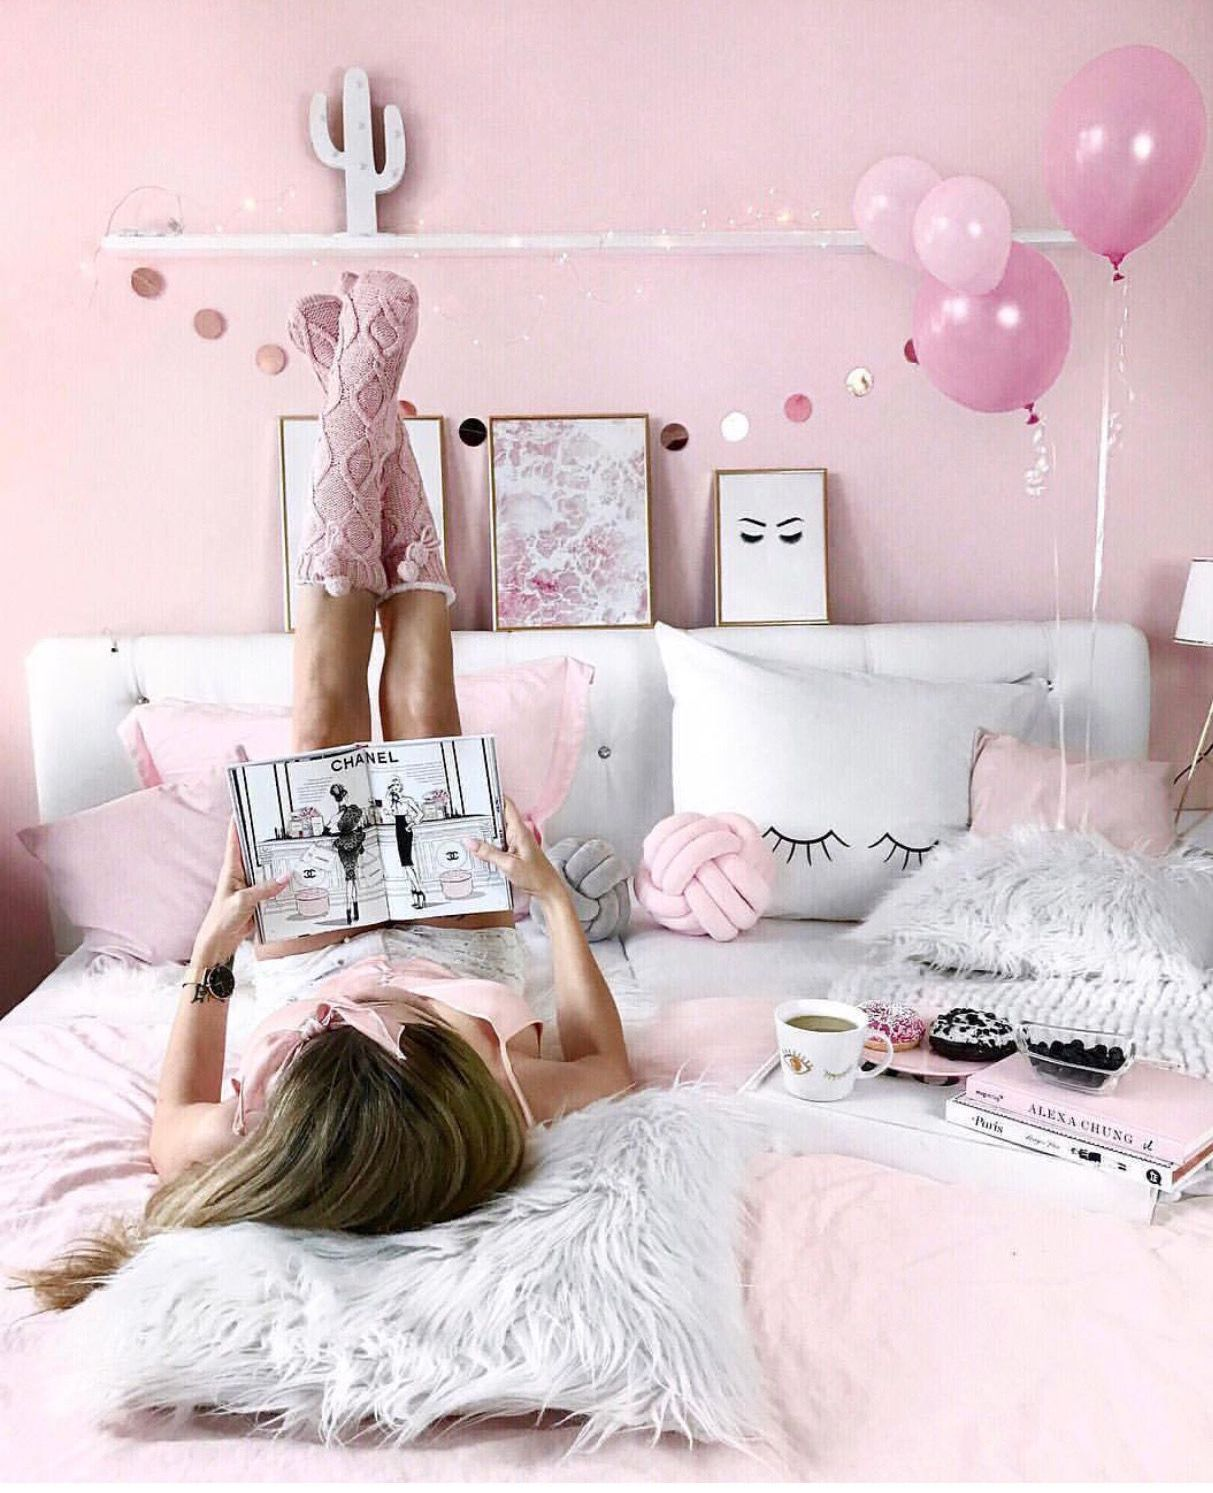 Festive pink mood on the winter holidays. Girl in socks with magazine lies on the bed